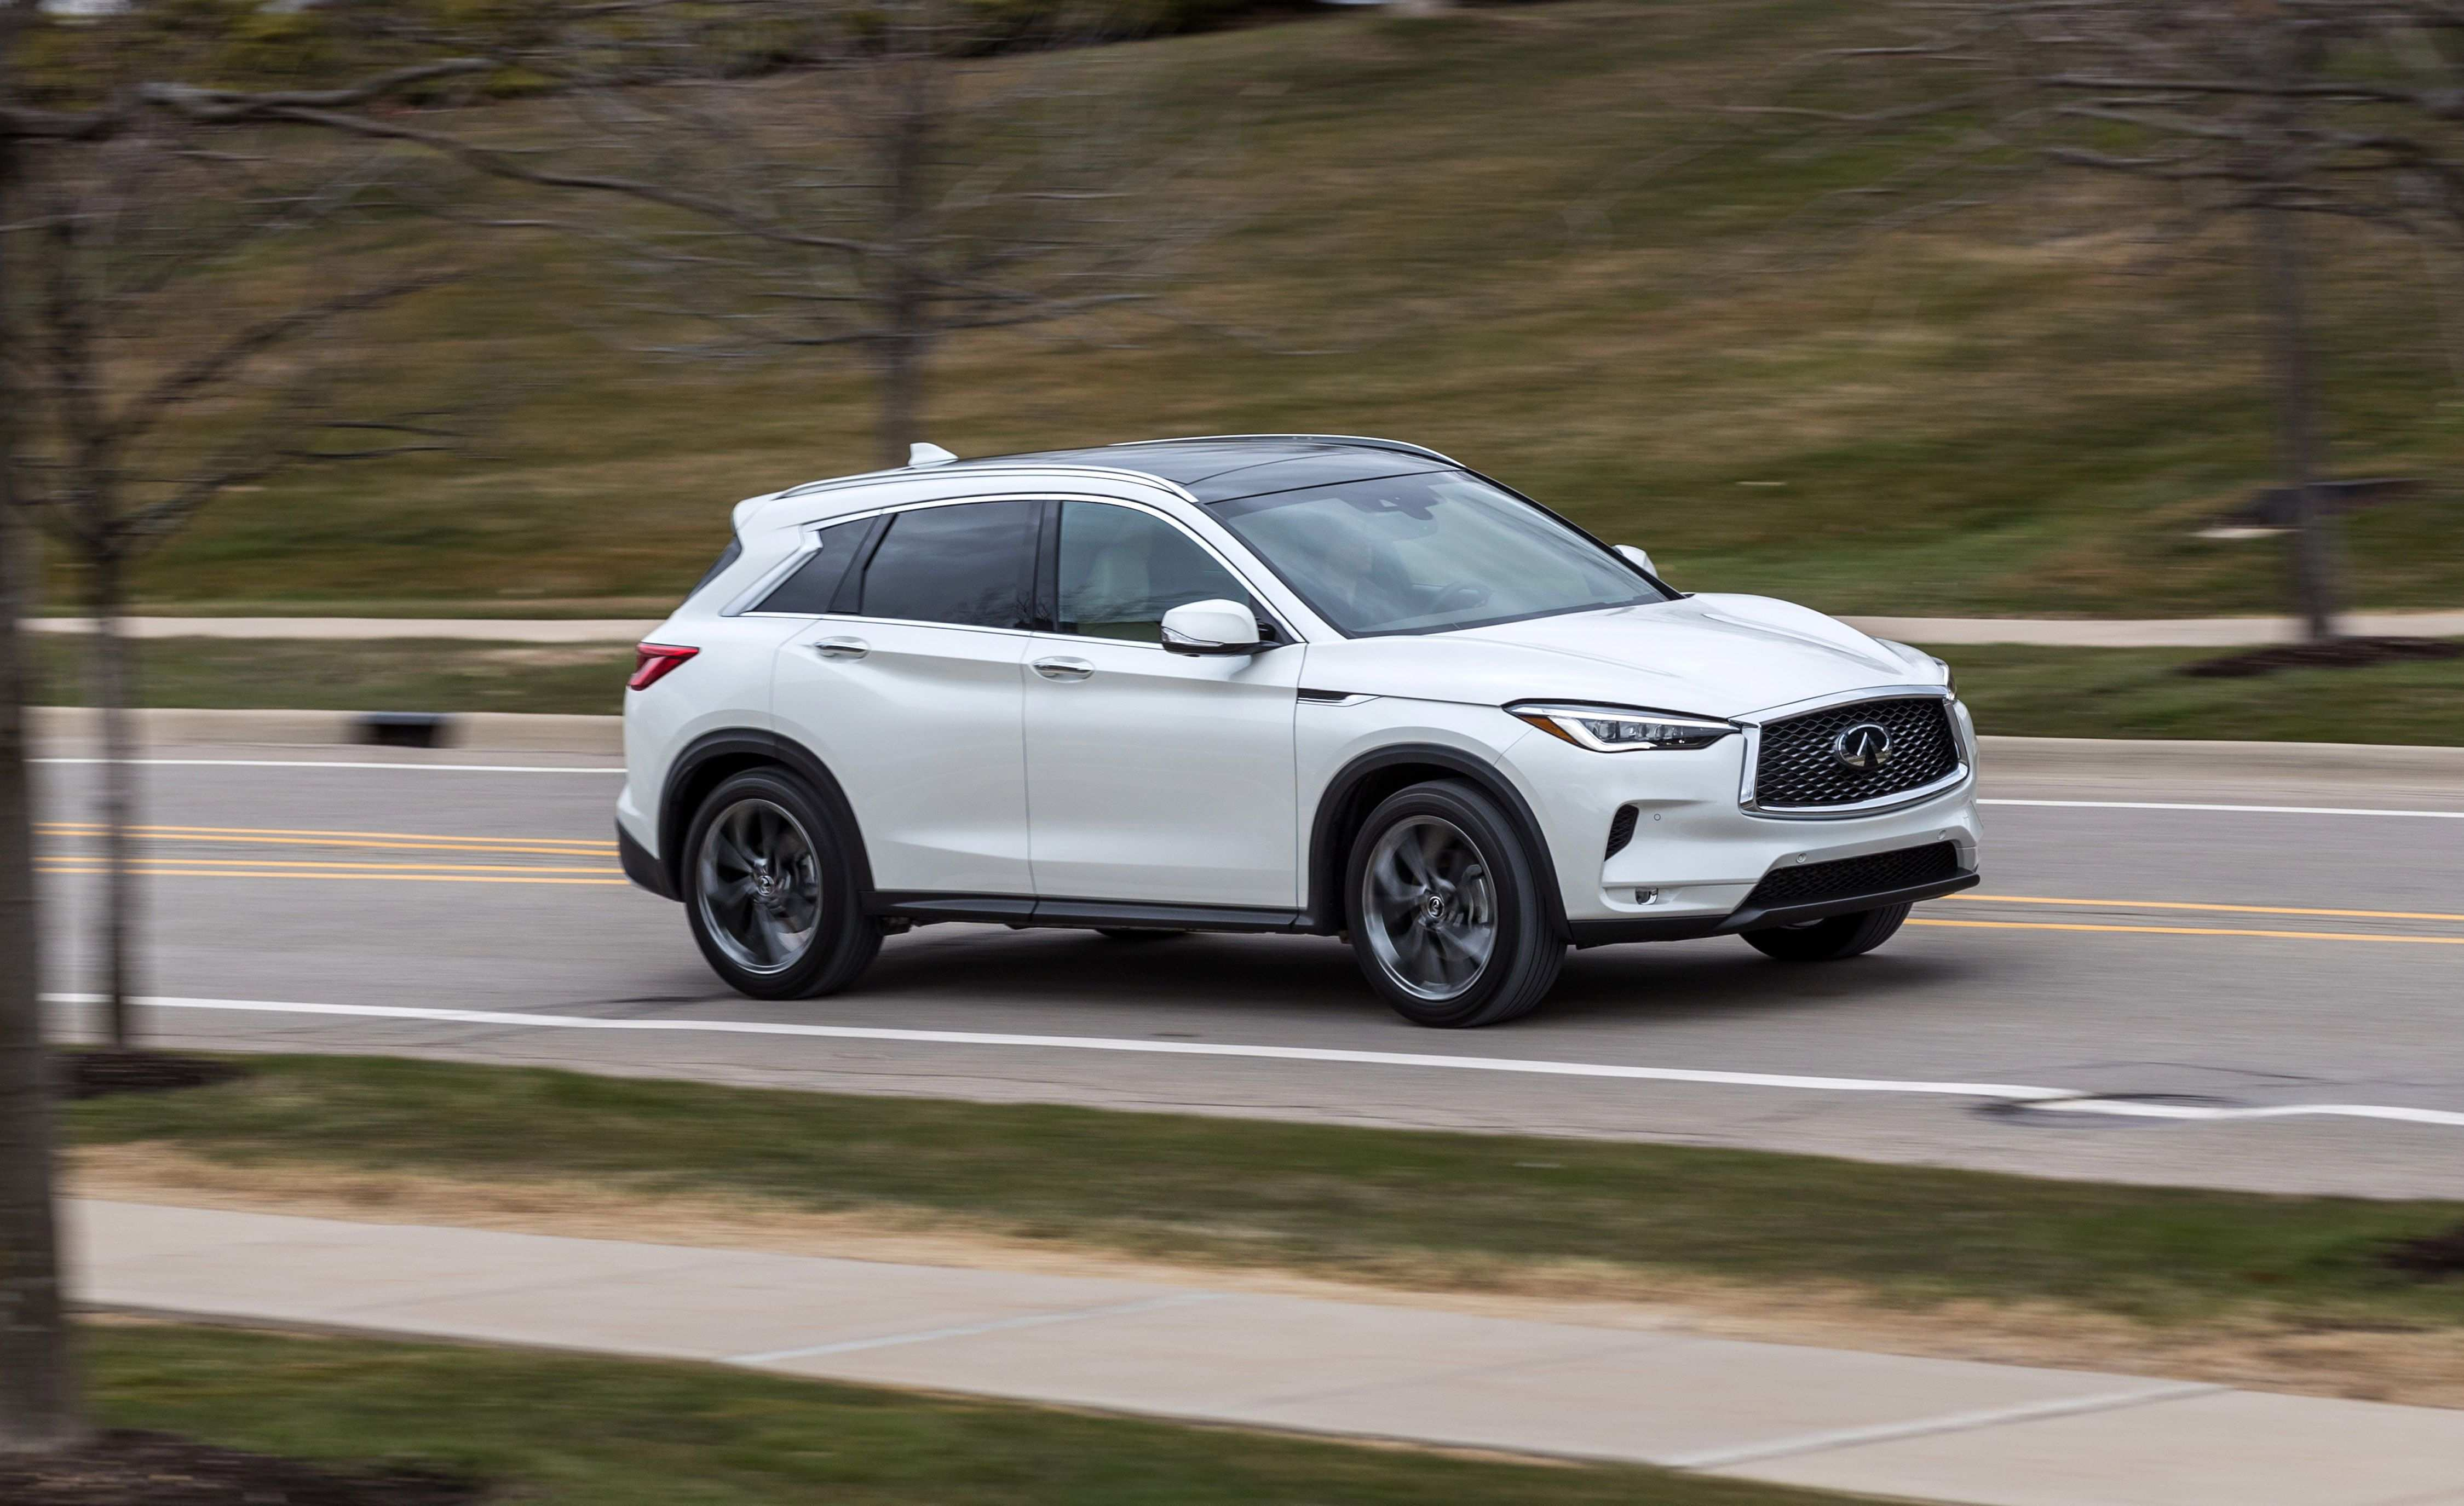 81 Best Review The Infiniti Qx50 2019 Hybrid Concept Redesign by The Infiniti Qx50 2019 Hybrid Concept